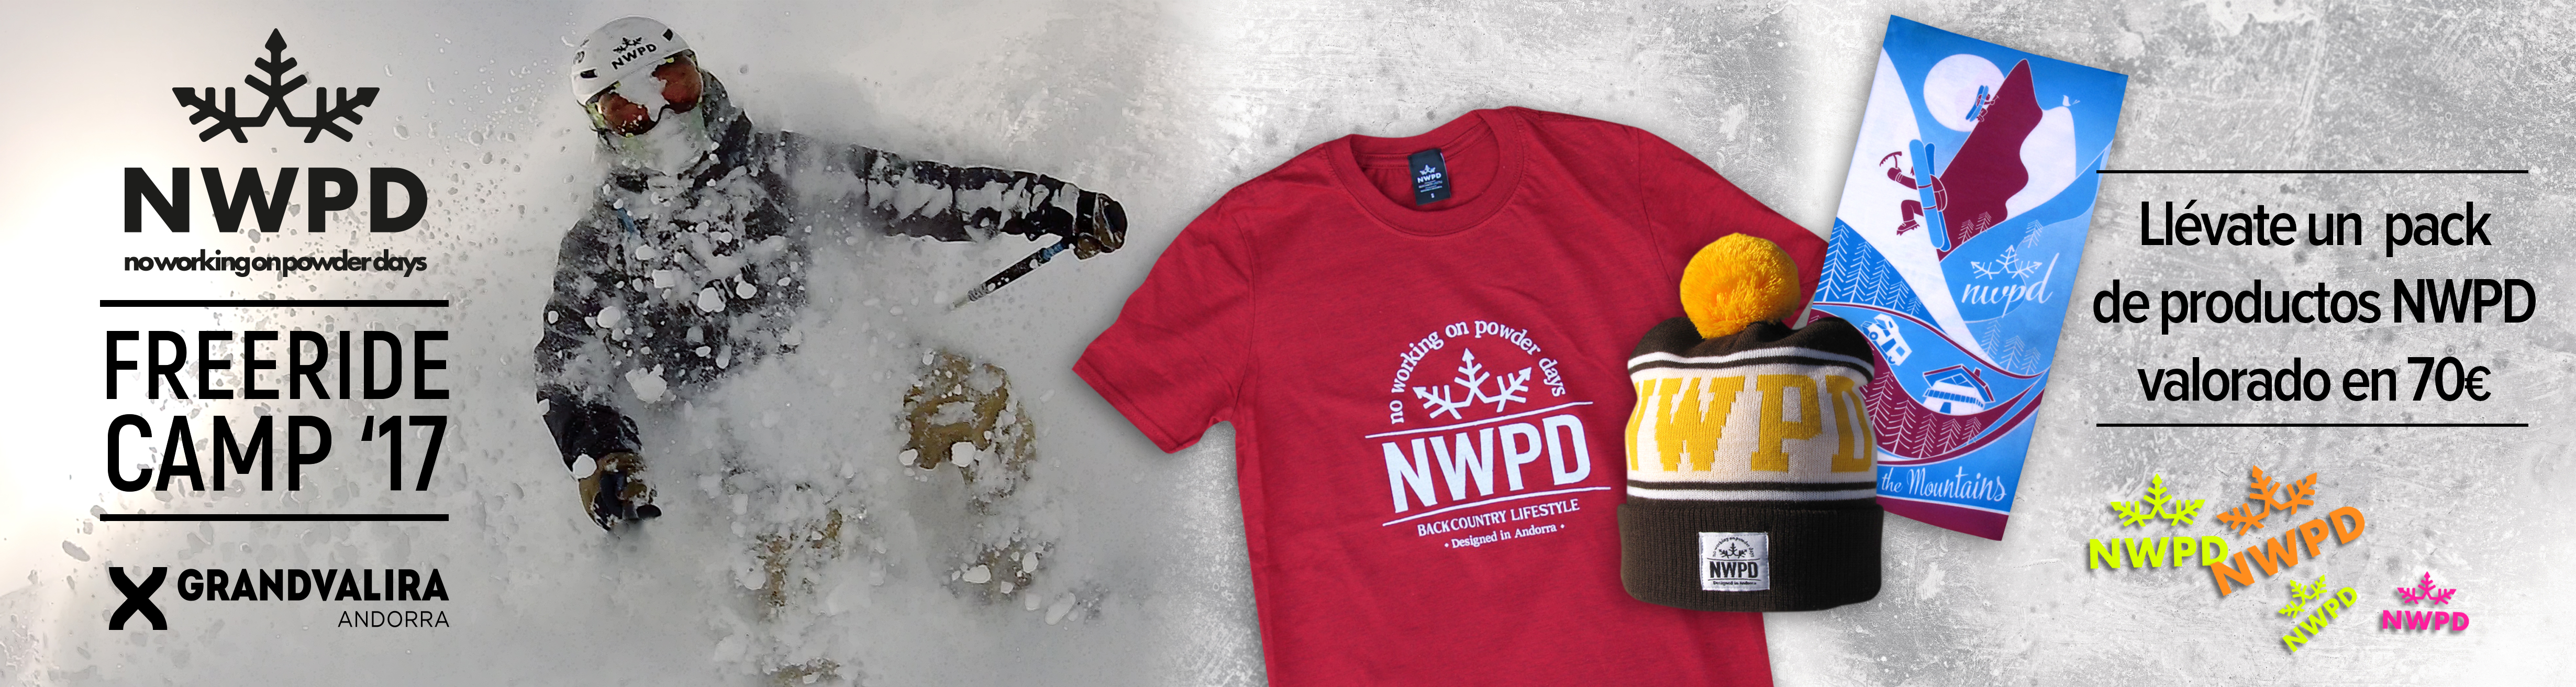 banner- pack-nwpd